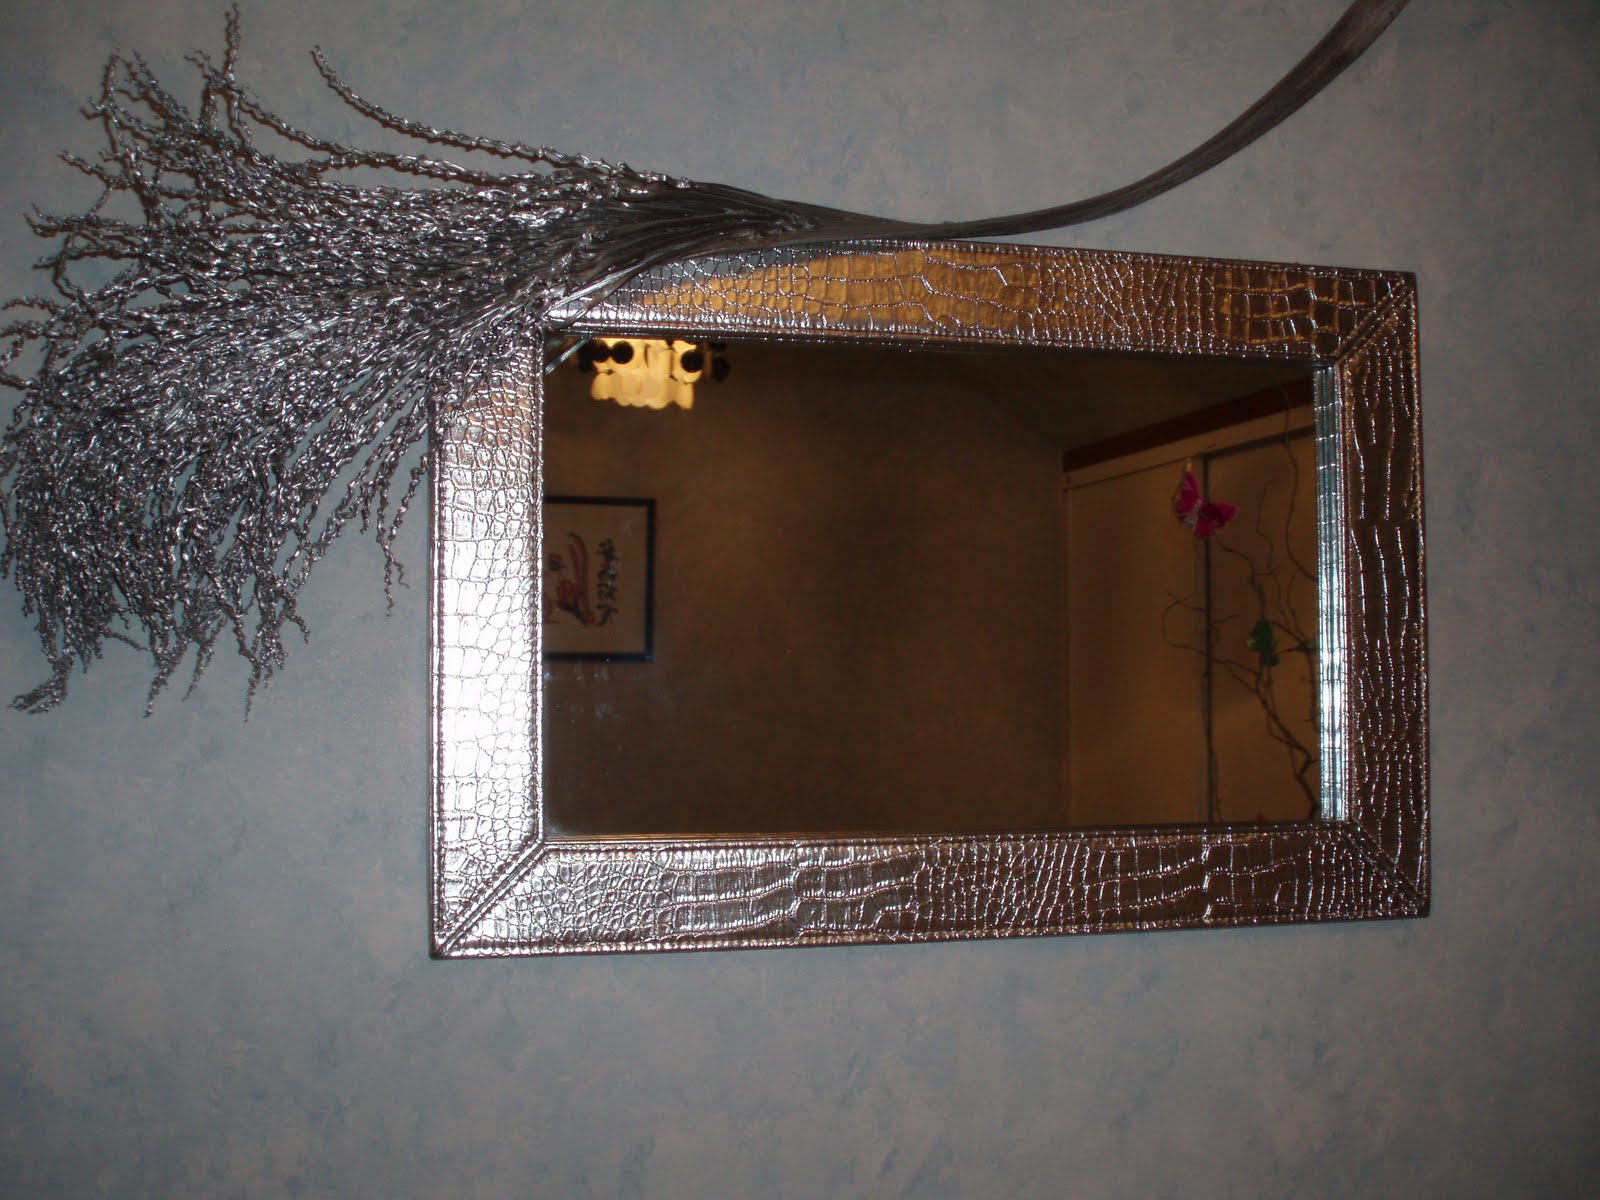 Customiser un miroir ancien maison design for Vieillir miroir